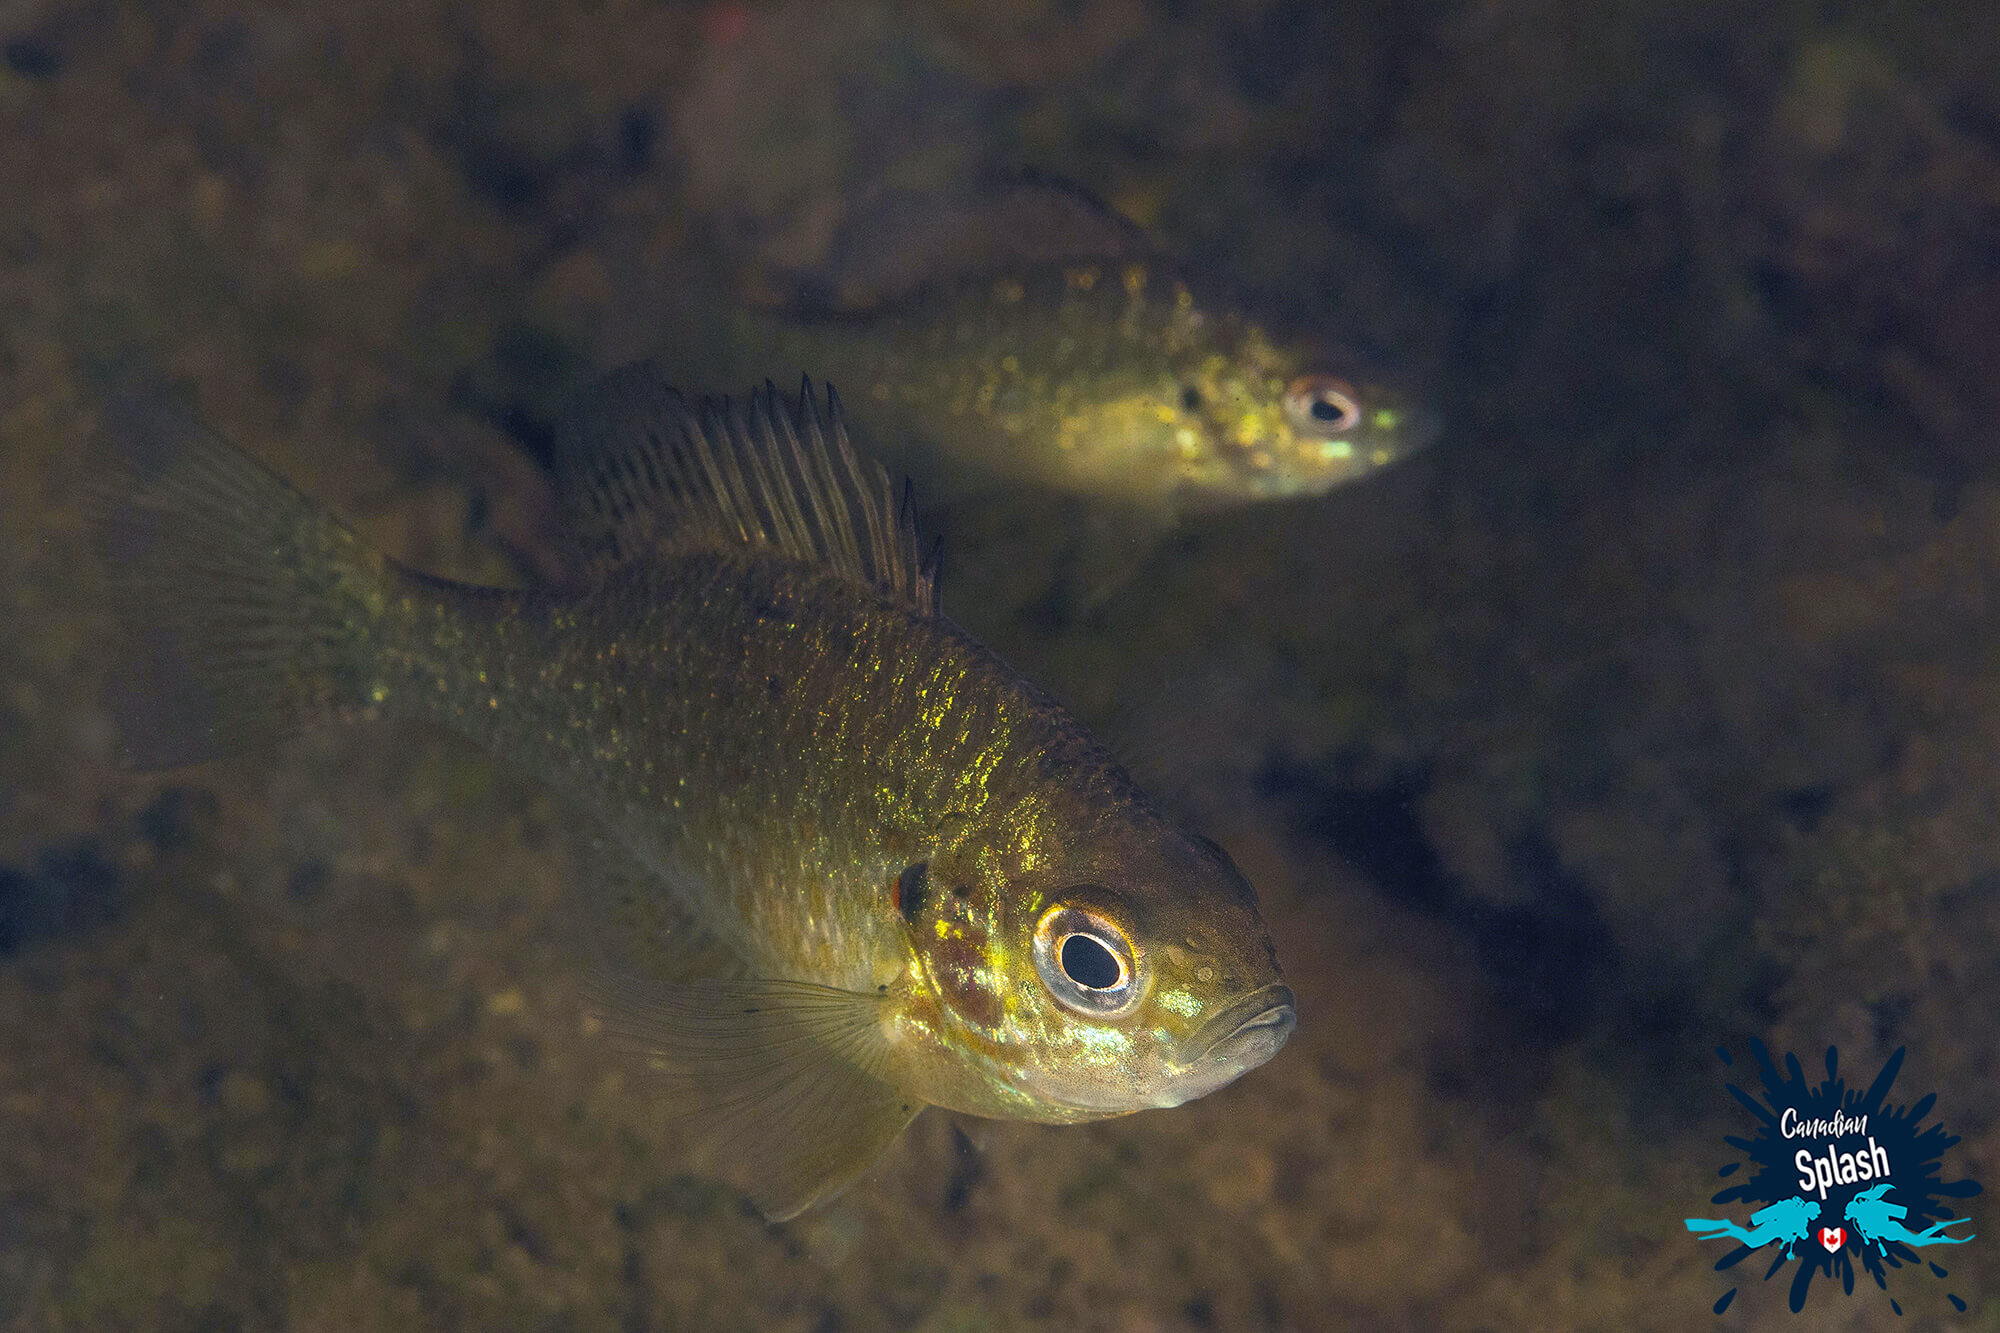 Pumpkinseed Fish In The Lake At Marten River Provincial Park, Ontario, Scuba Diving Canada